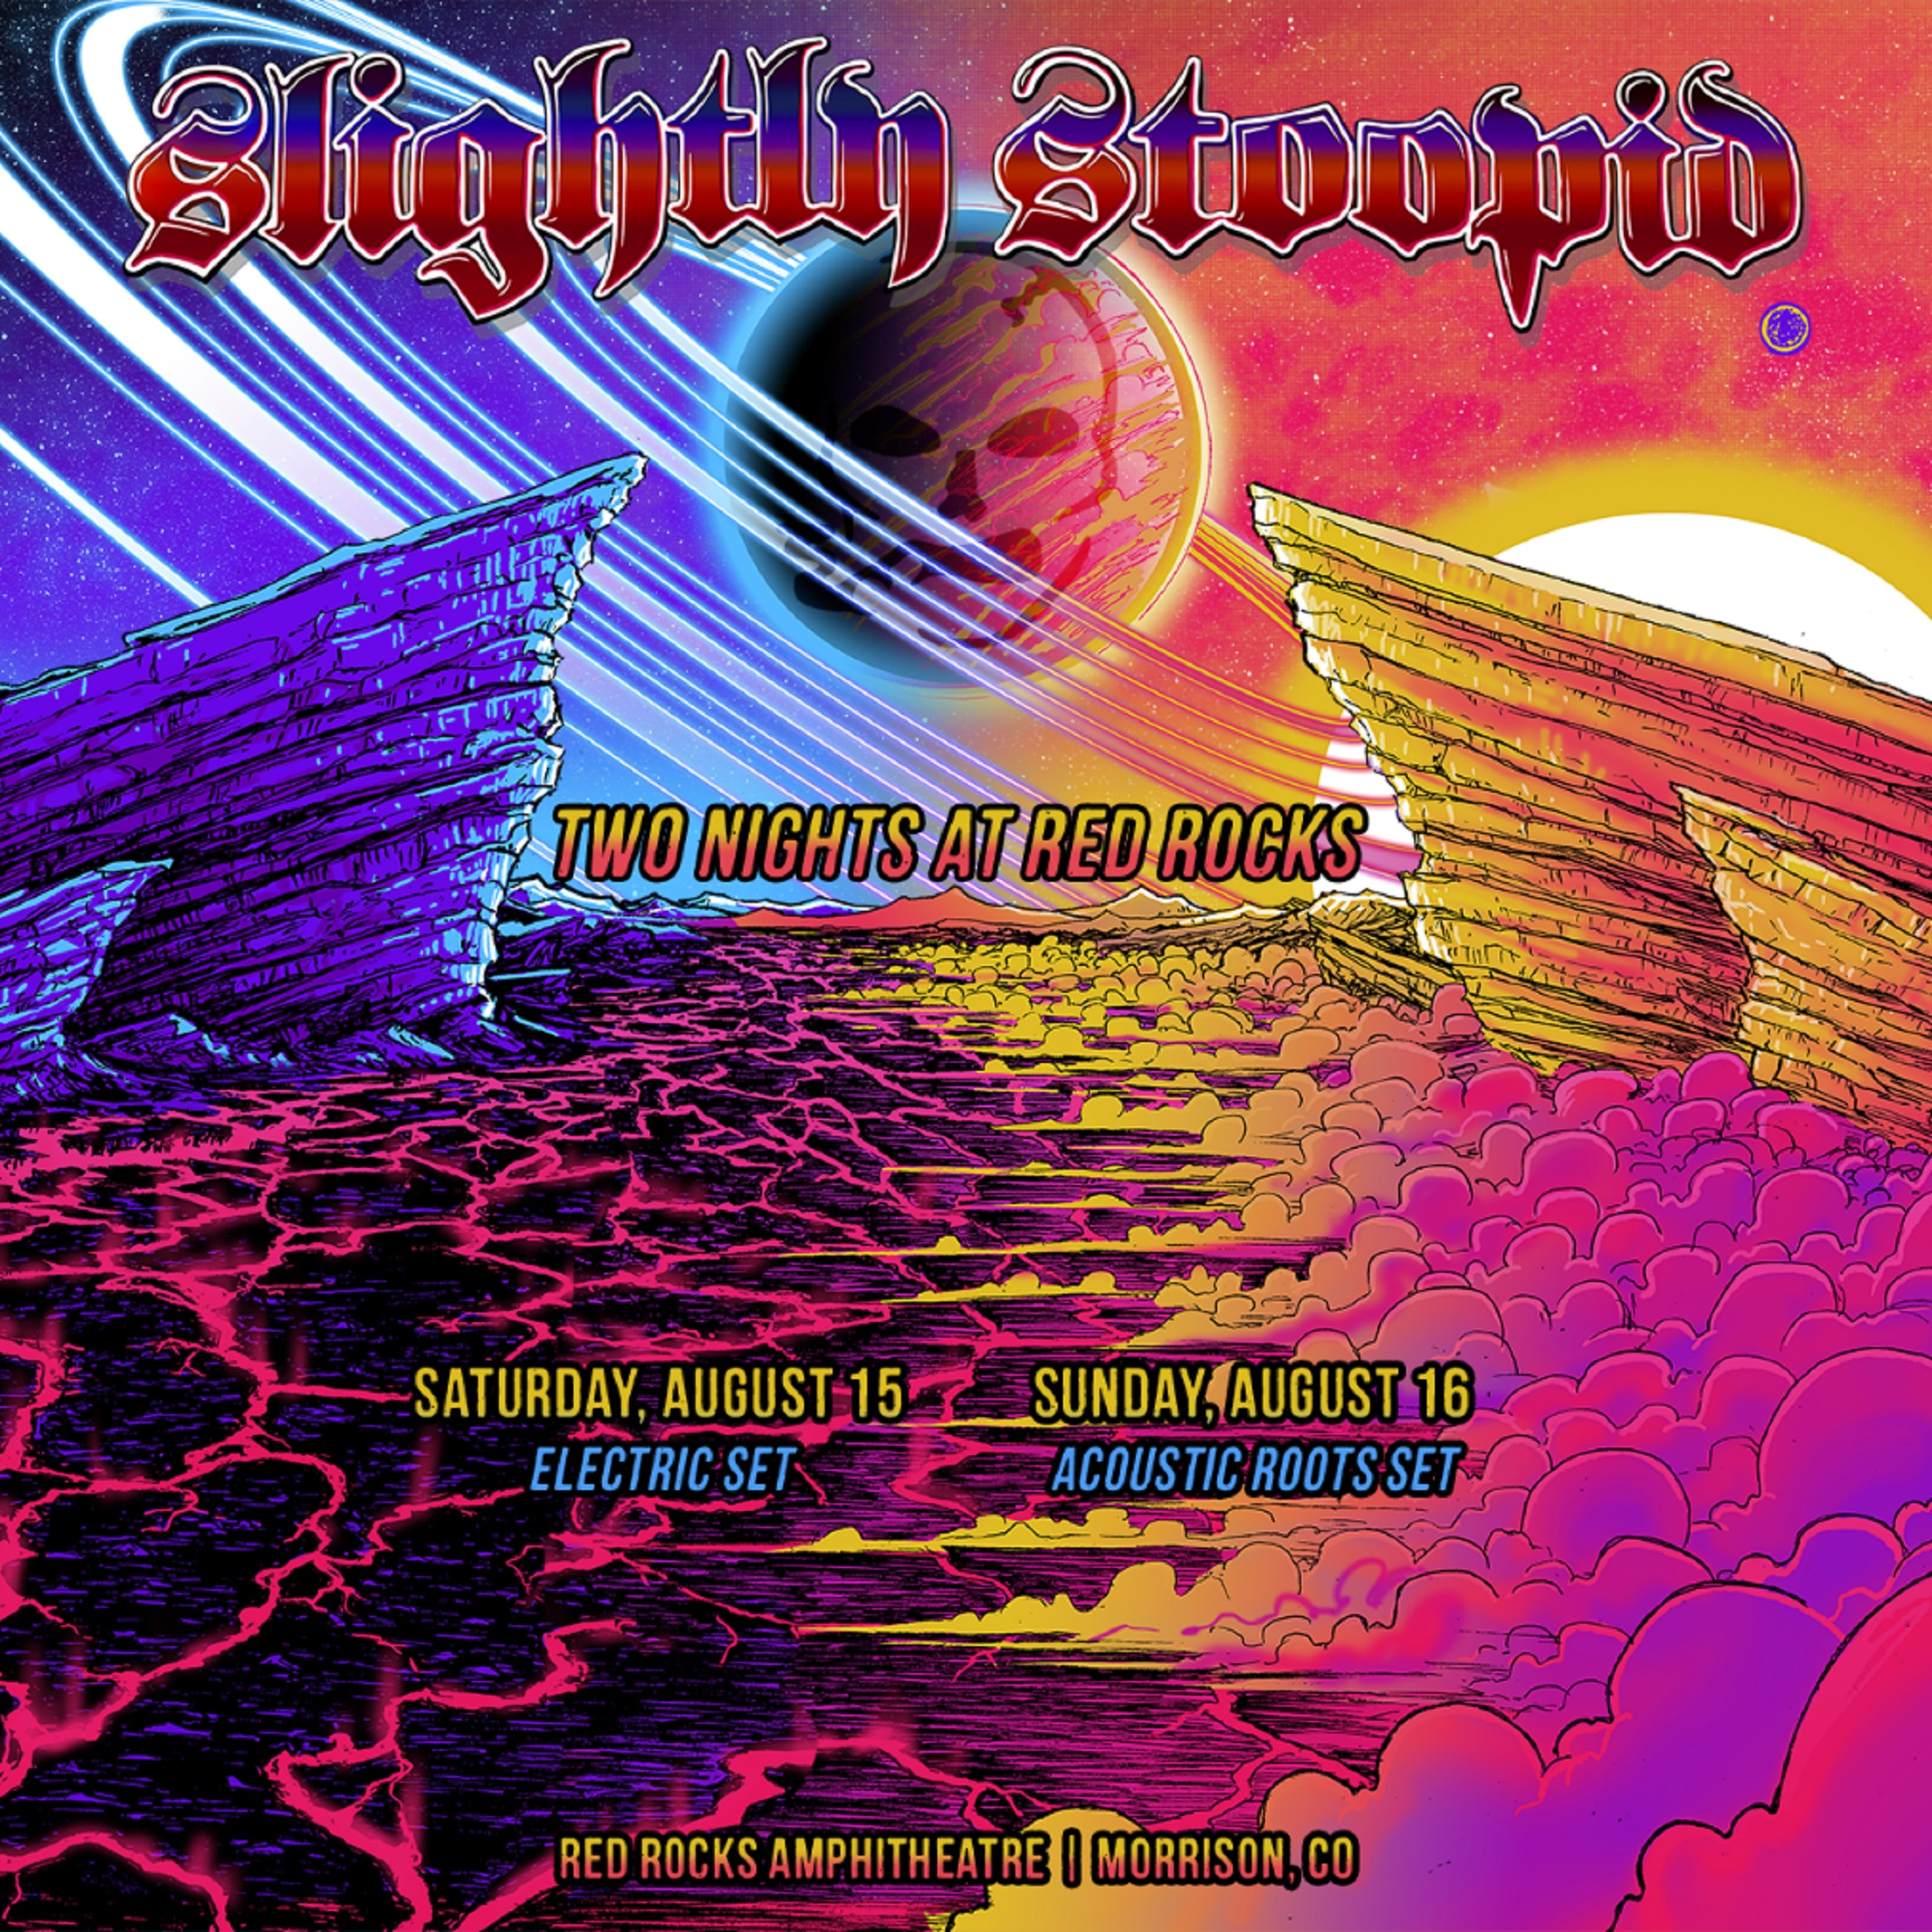 Slightly Stoopid to perform double header at Red Rocks - Aug 15 + 16